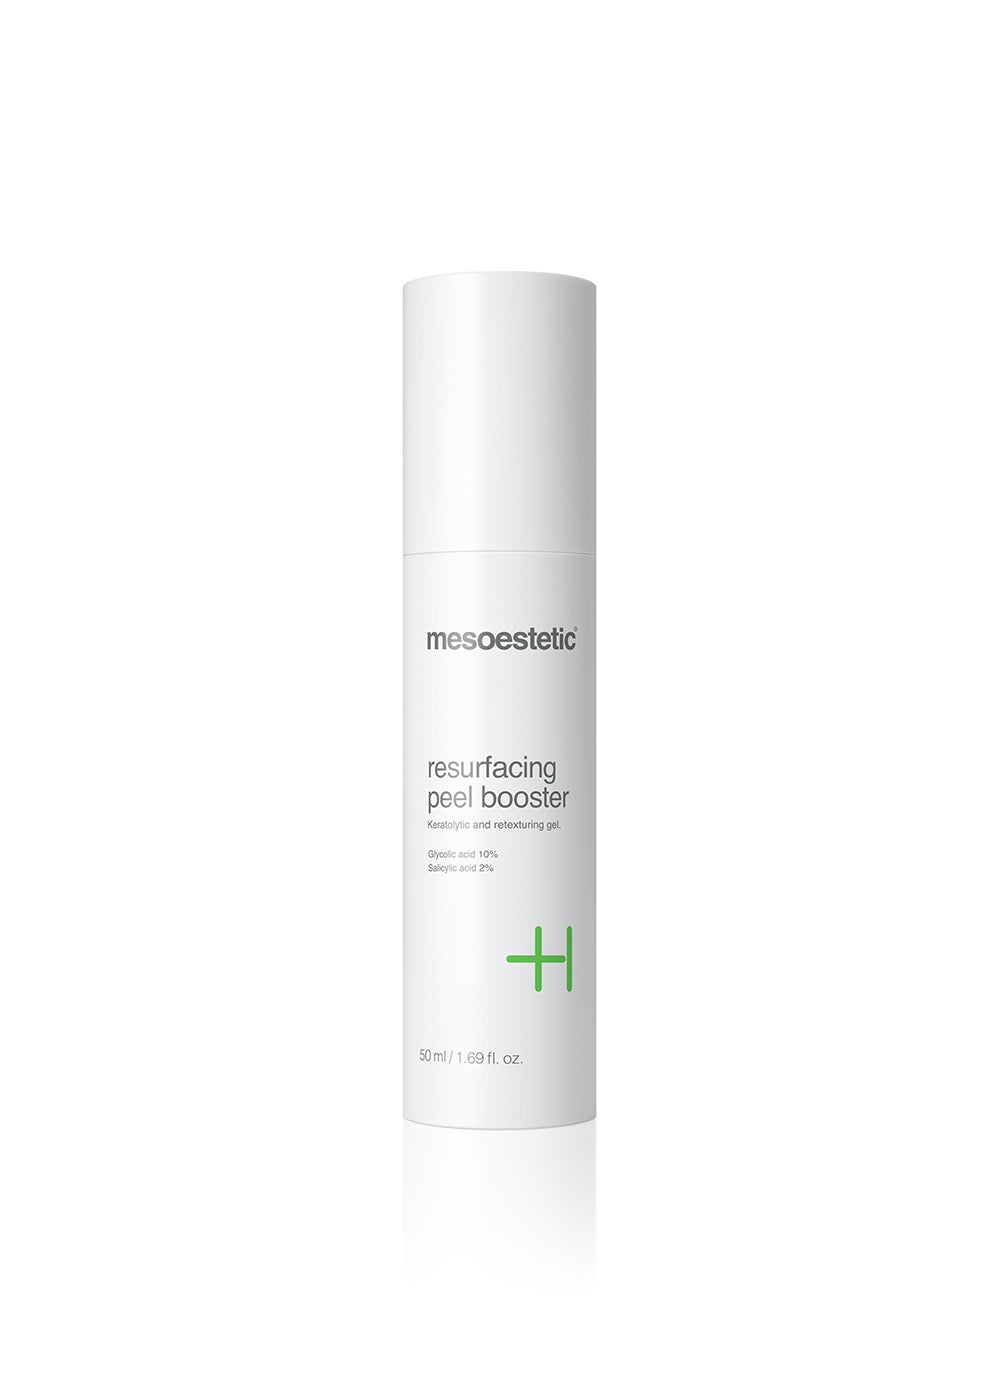 Mesoestetic Resurfacing Peel Booster - Peeling